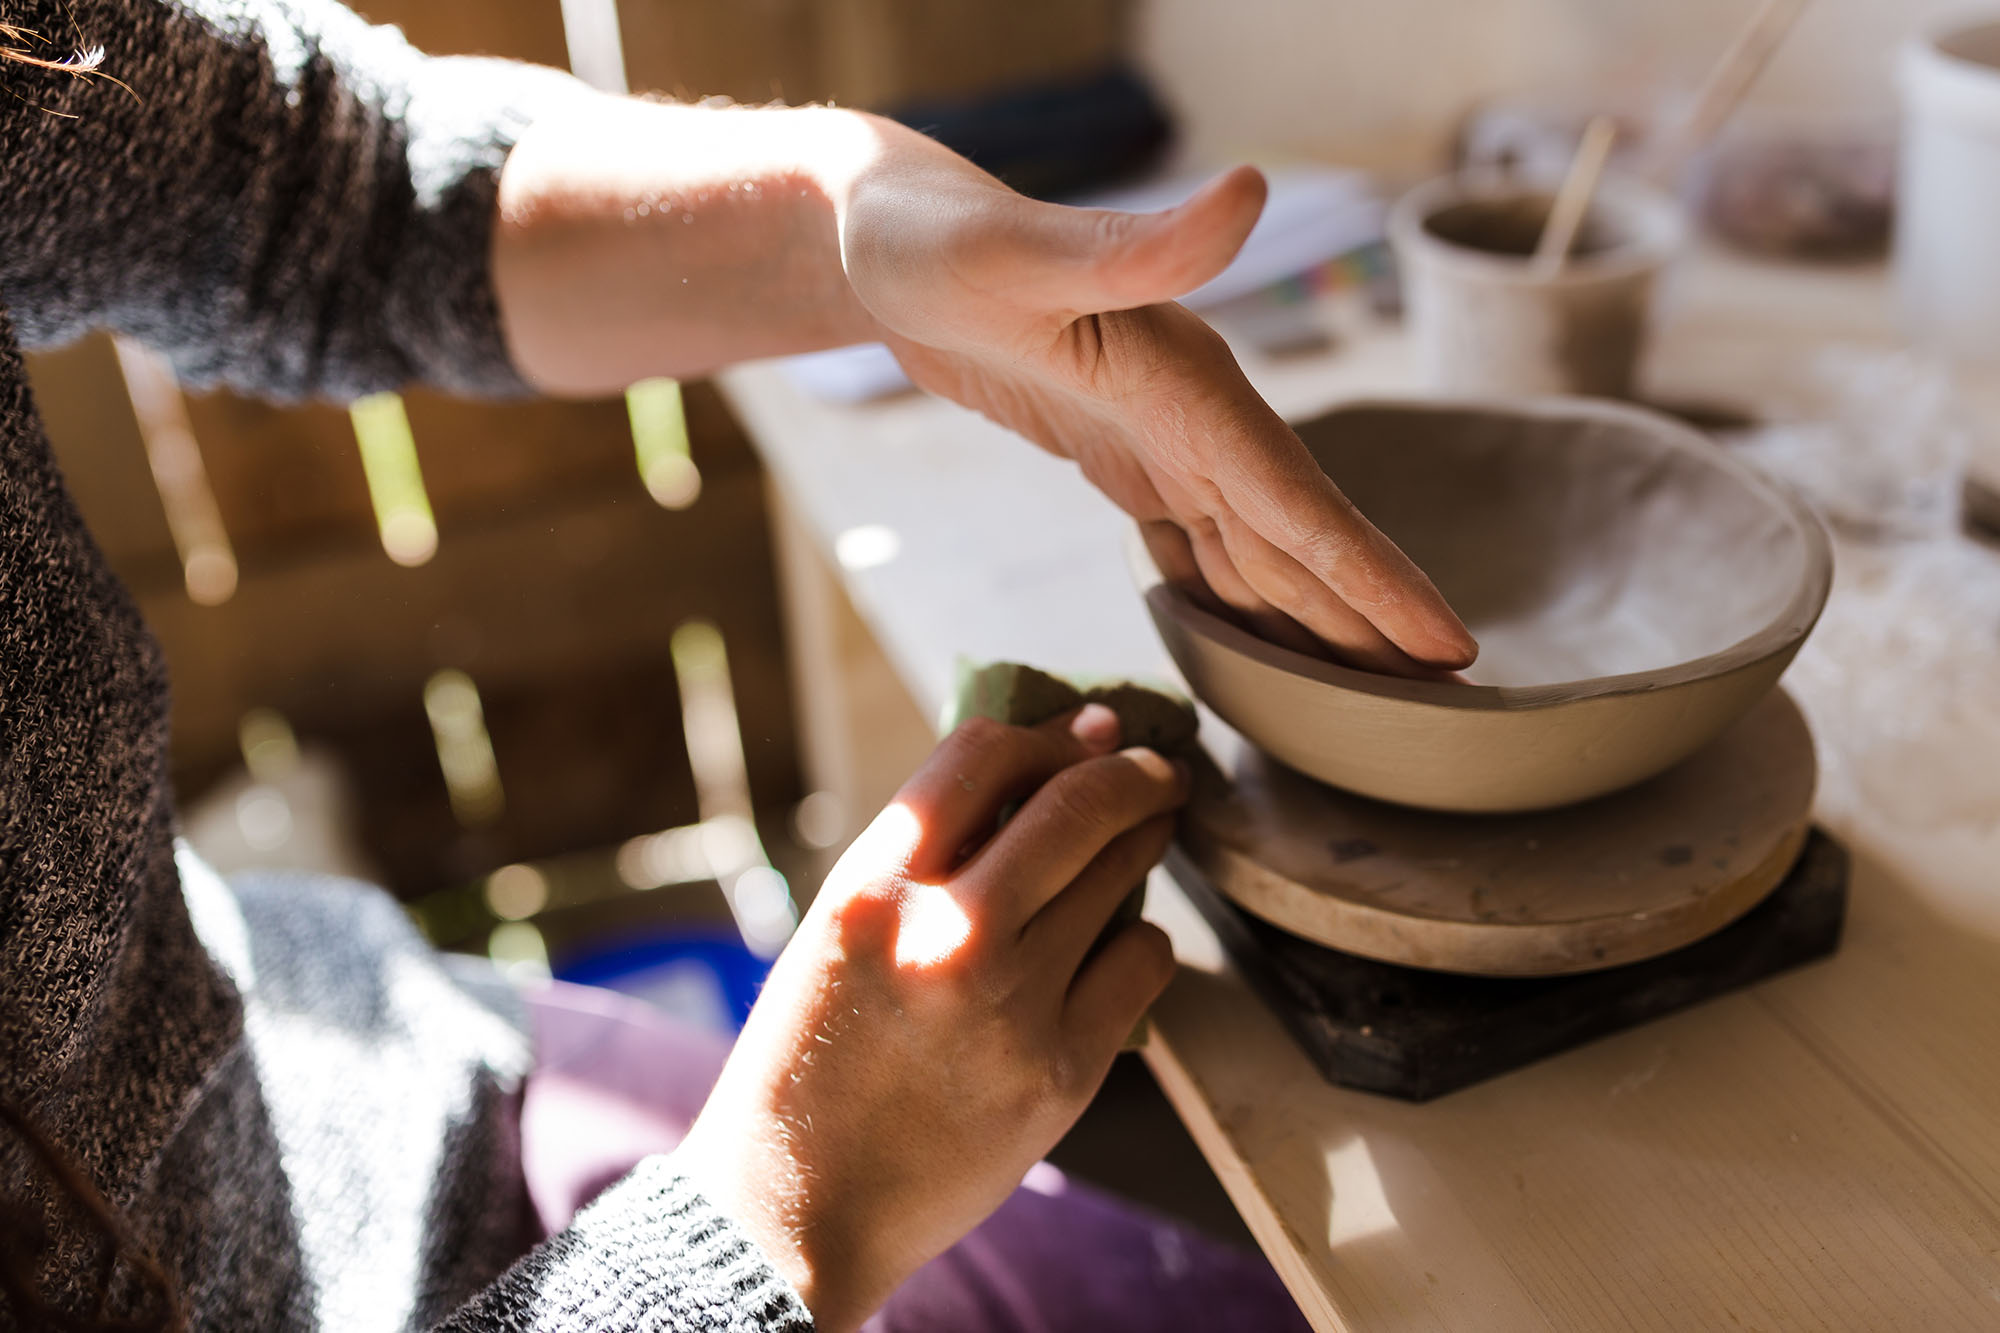 Take Some Online Pottery Classes